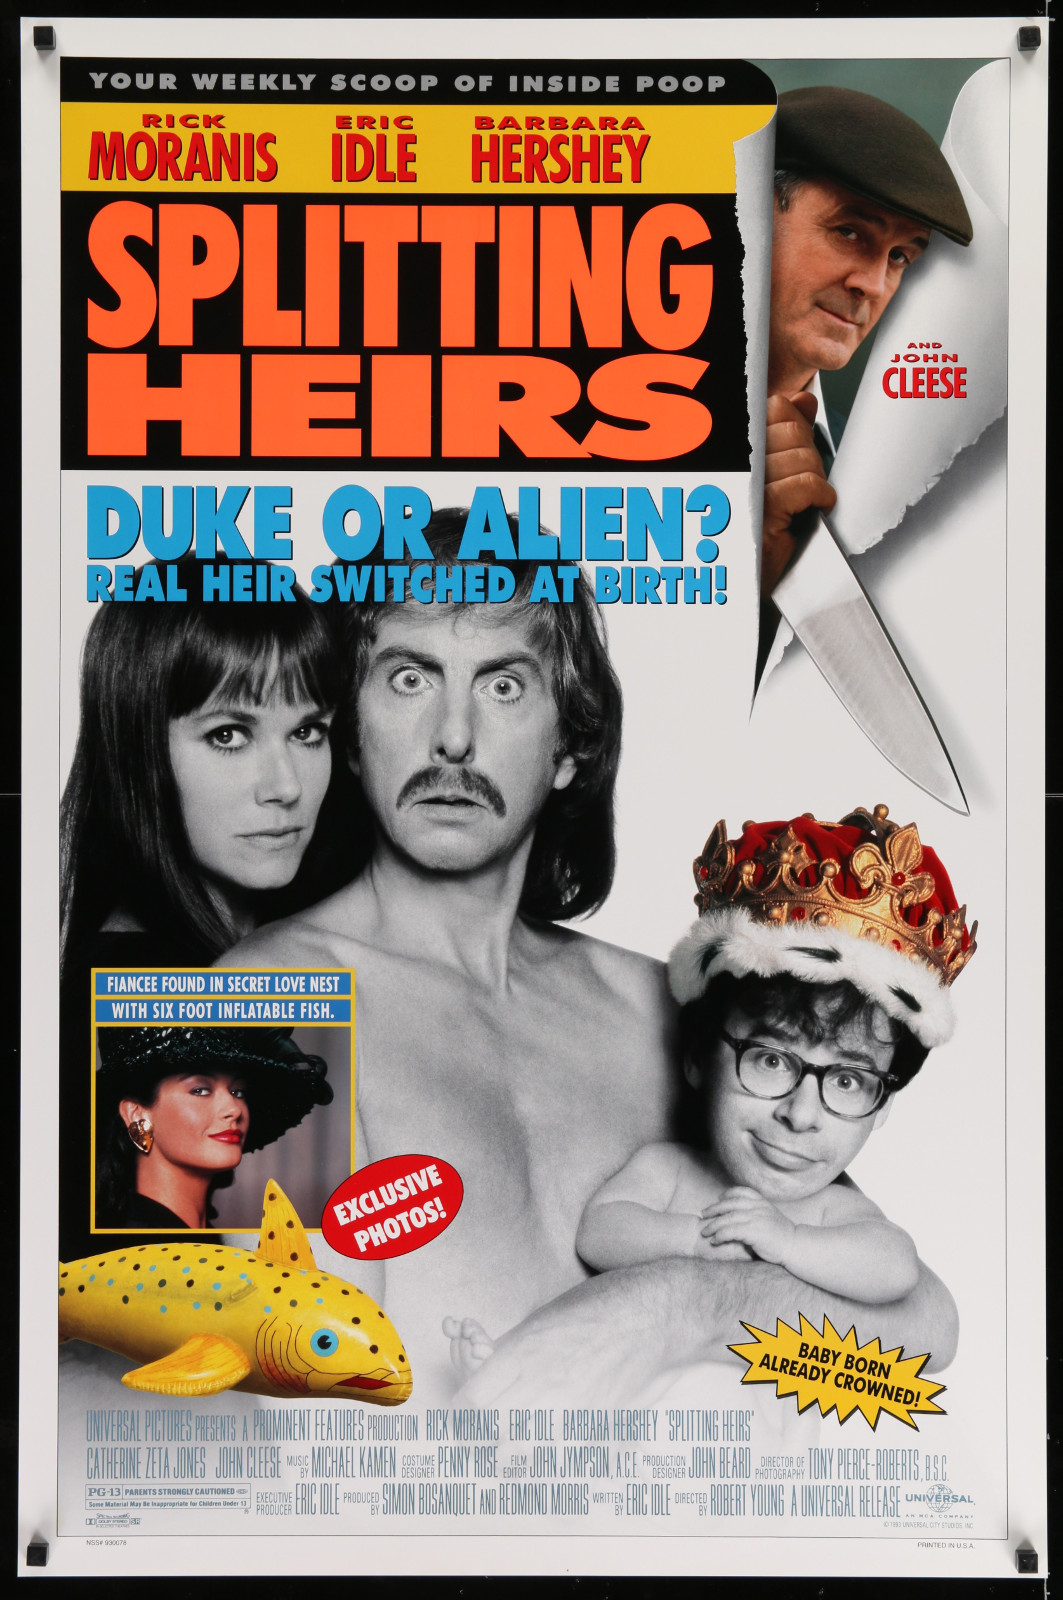 Splitting Heirs 2A446 A Part Of A Lot 17 Unfolded Mostly Double-Sided 27X40 One-Sheets '90S-00S Great Movie Images!